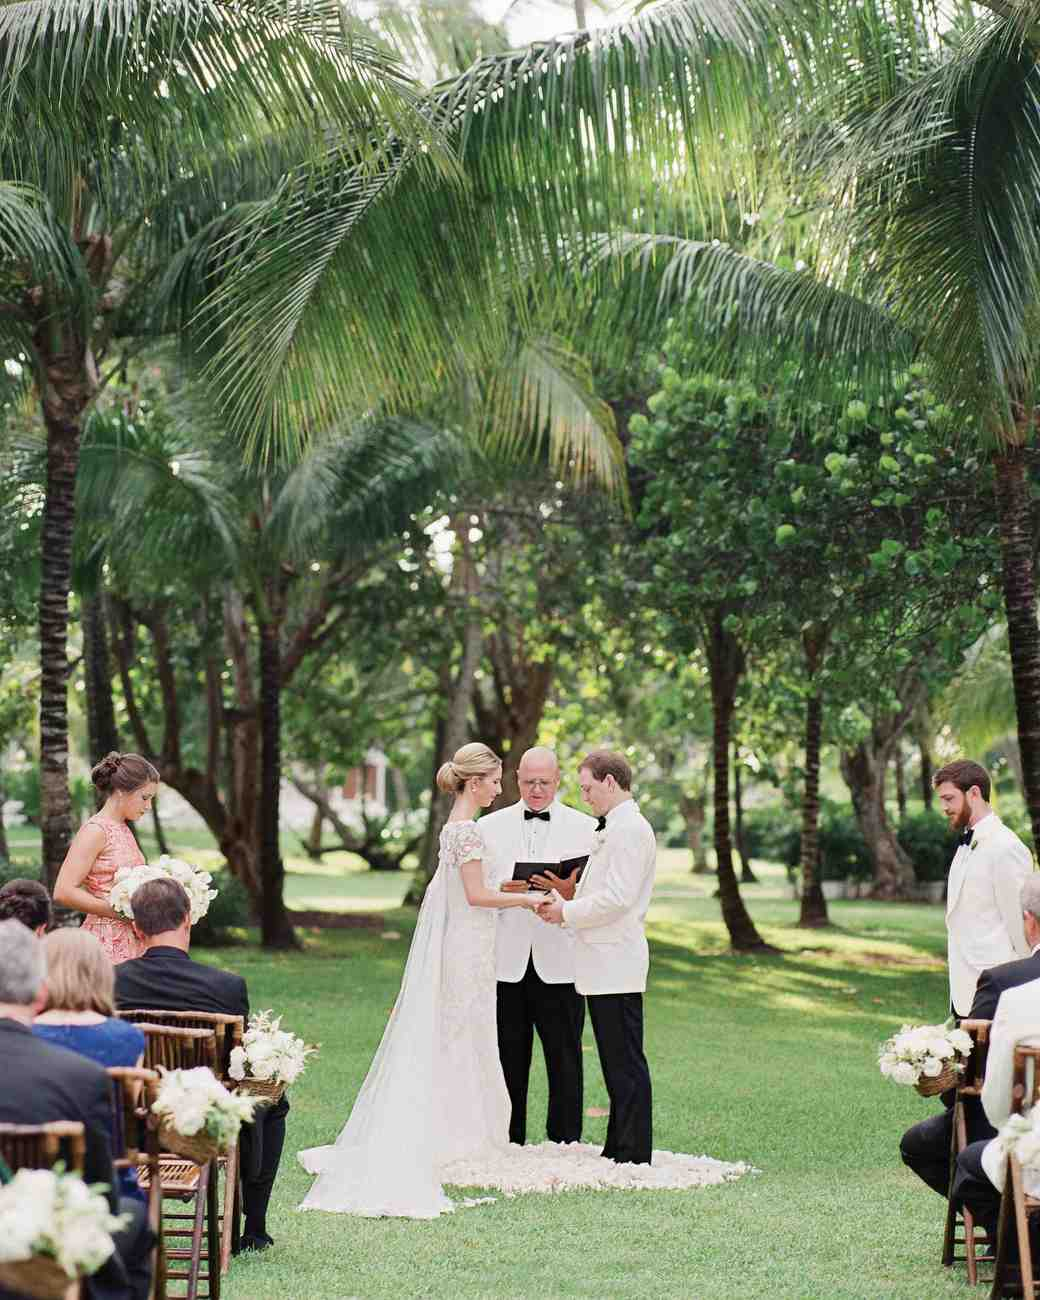 kelsey-casey-real-wedding-bride-and-groom-at-altar.jpg